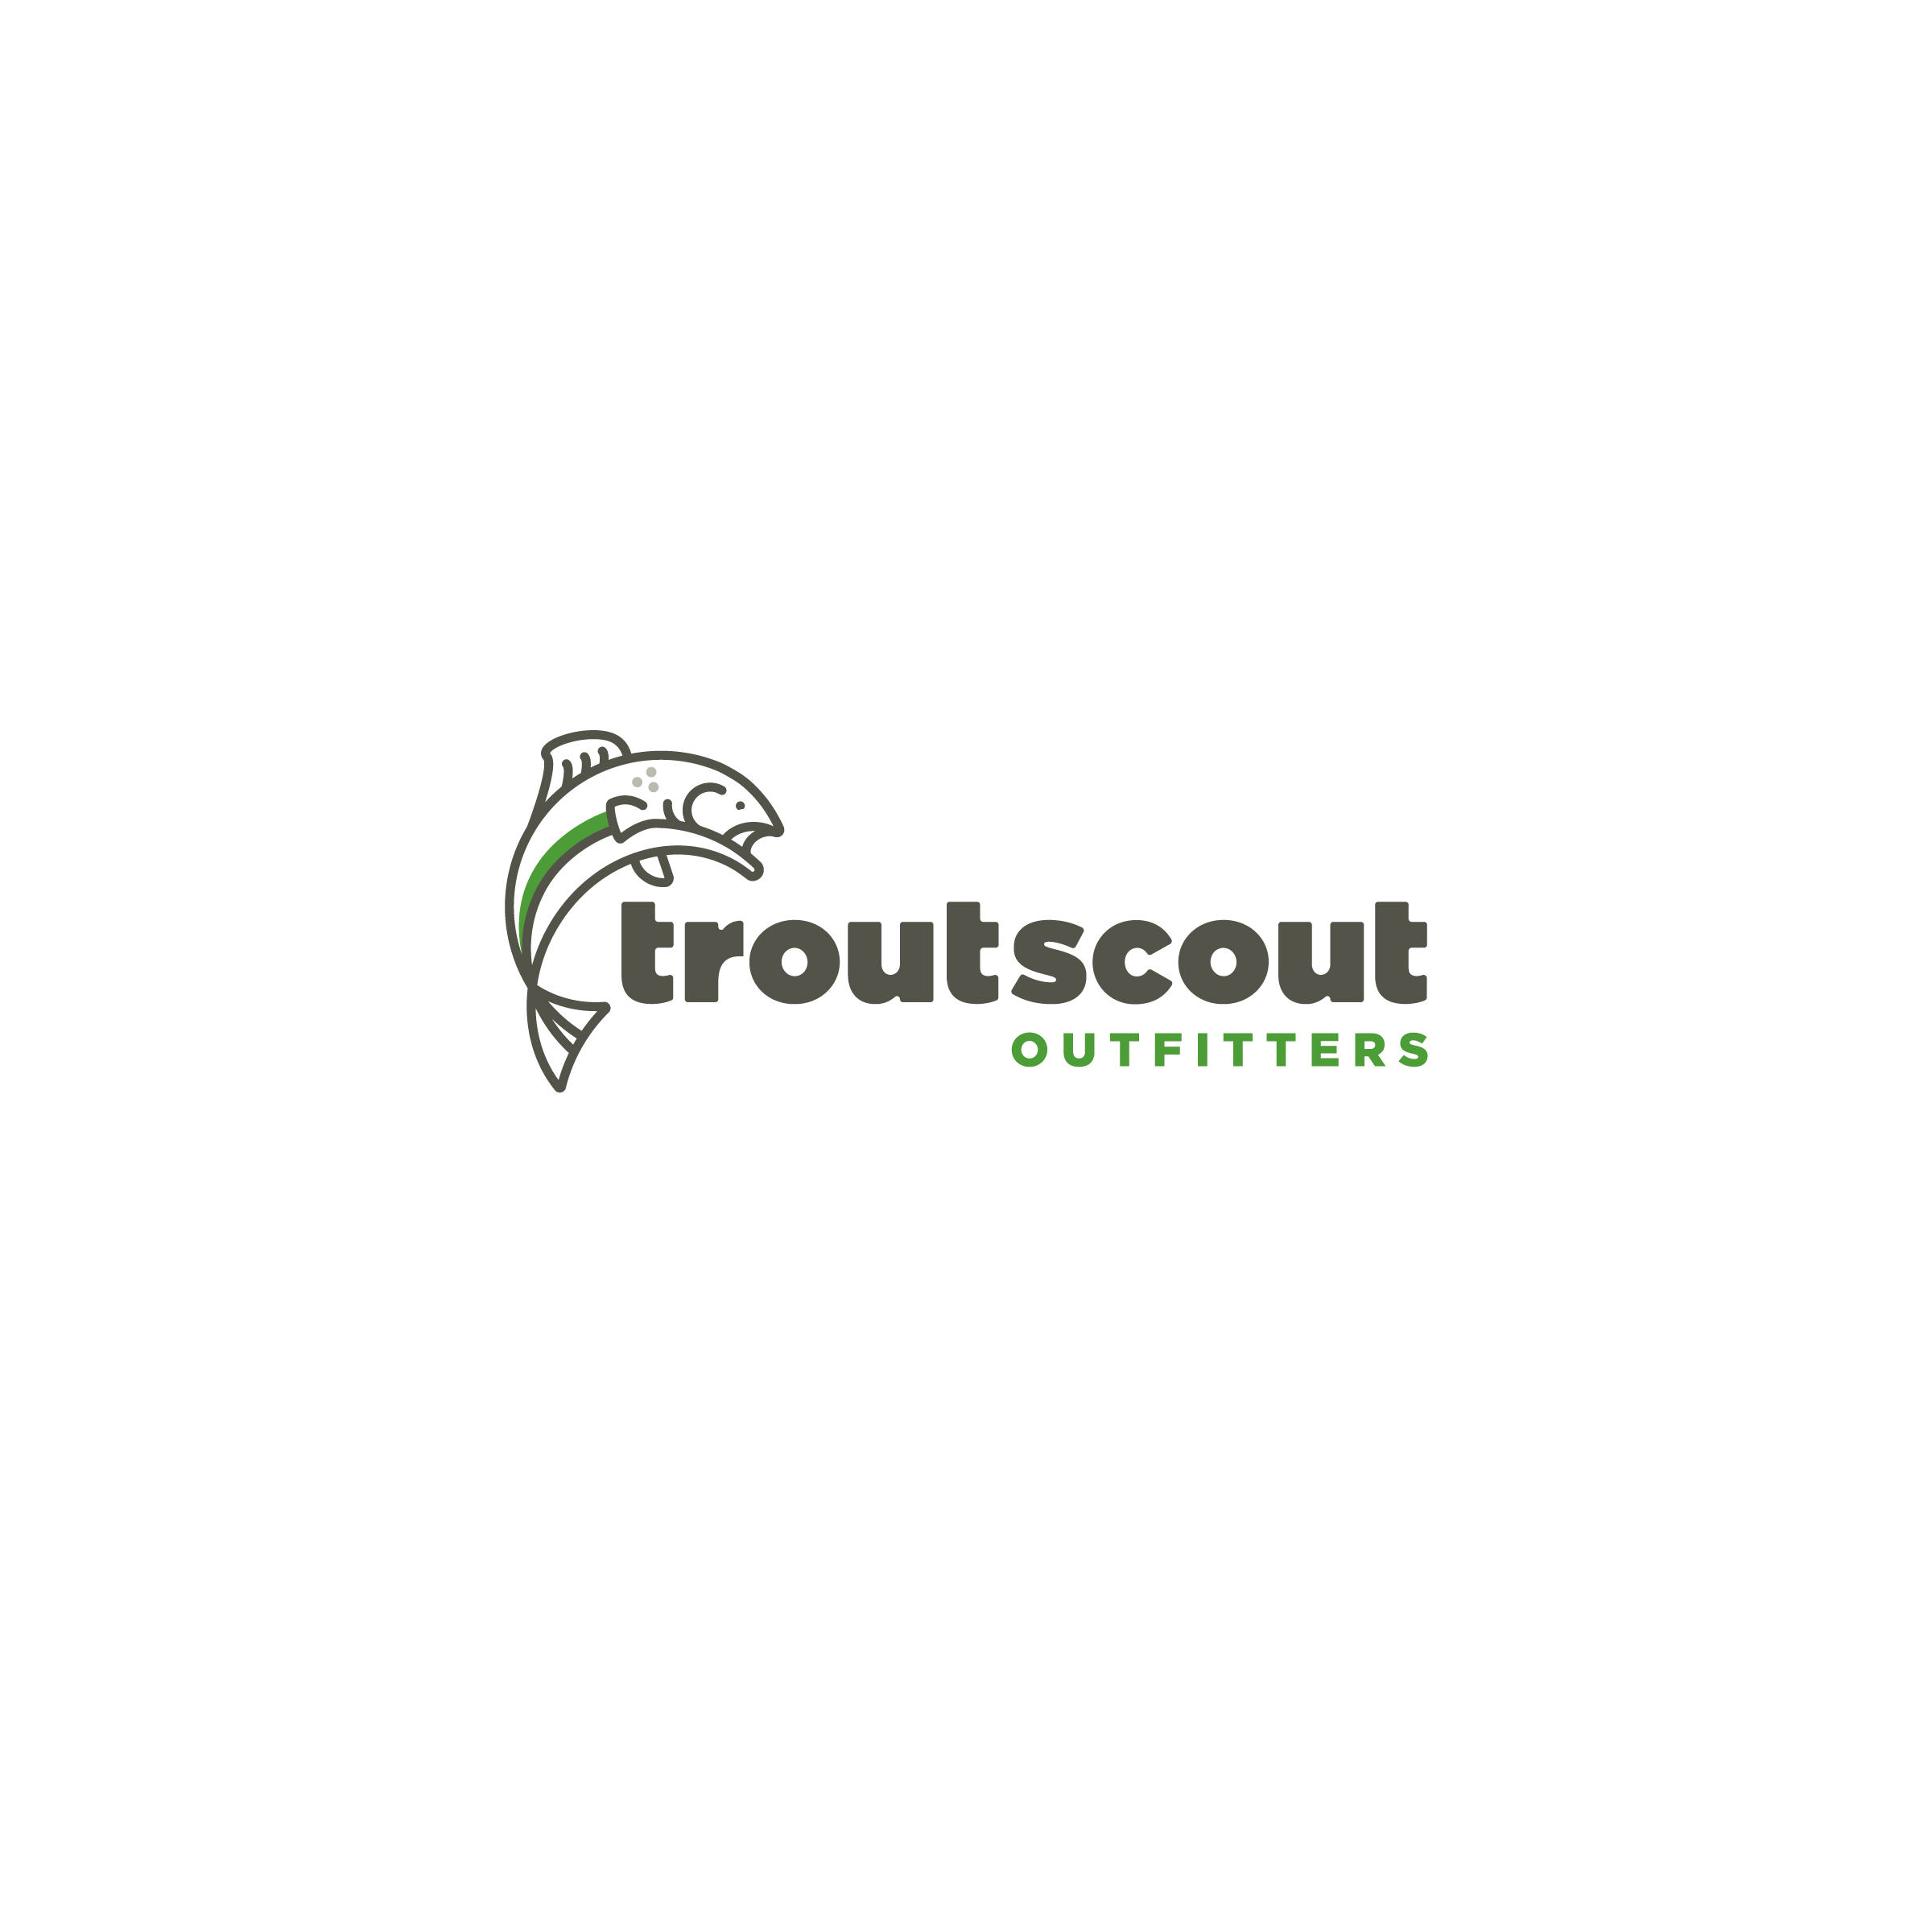 TroutScoutOutfitters_Cuttie_3Clr_Hrzt.jpg